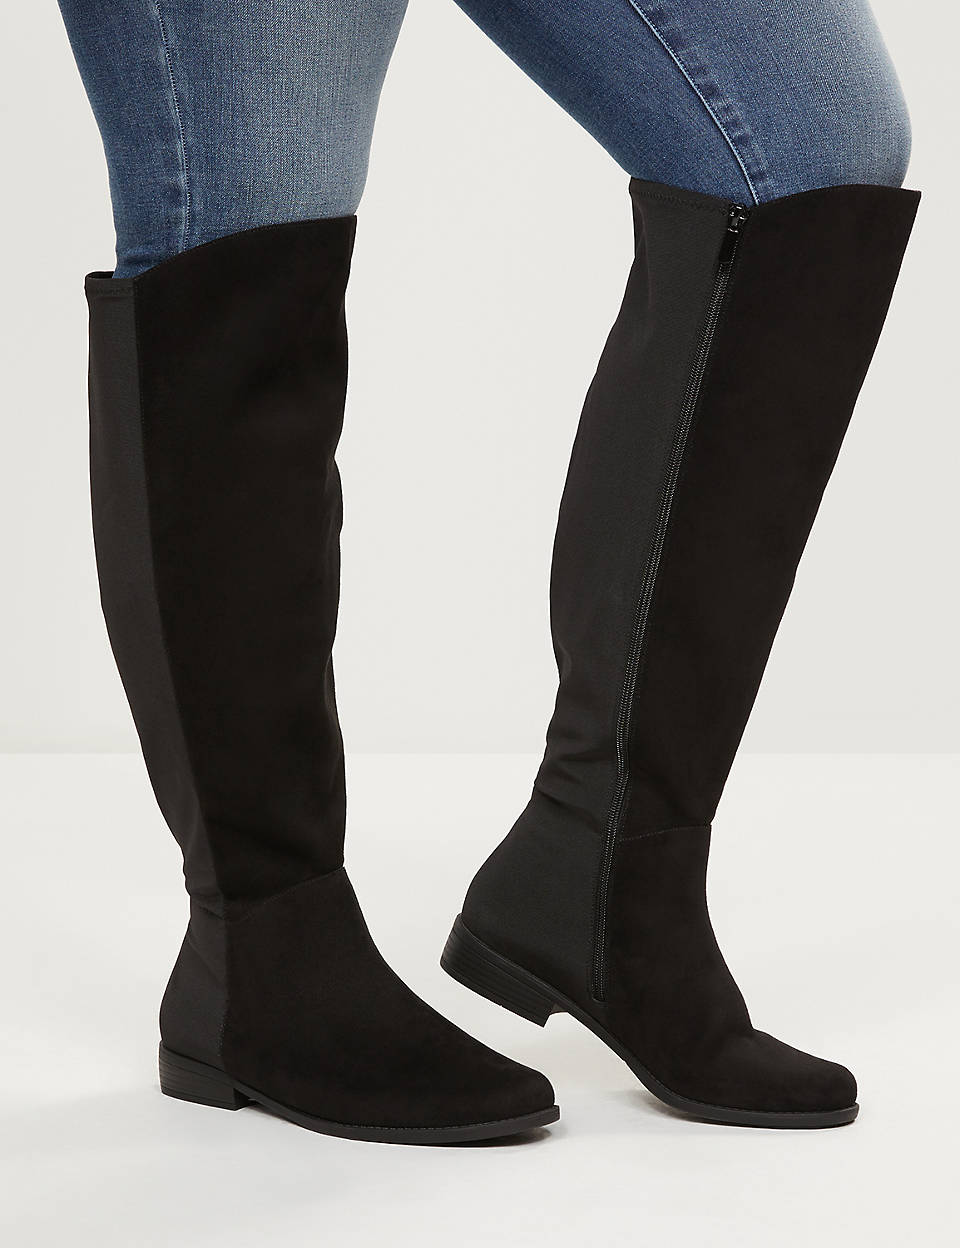 Wide calf boots, Suede flat boots